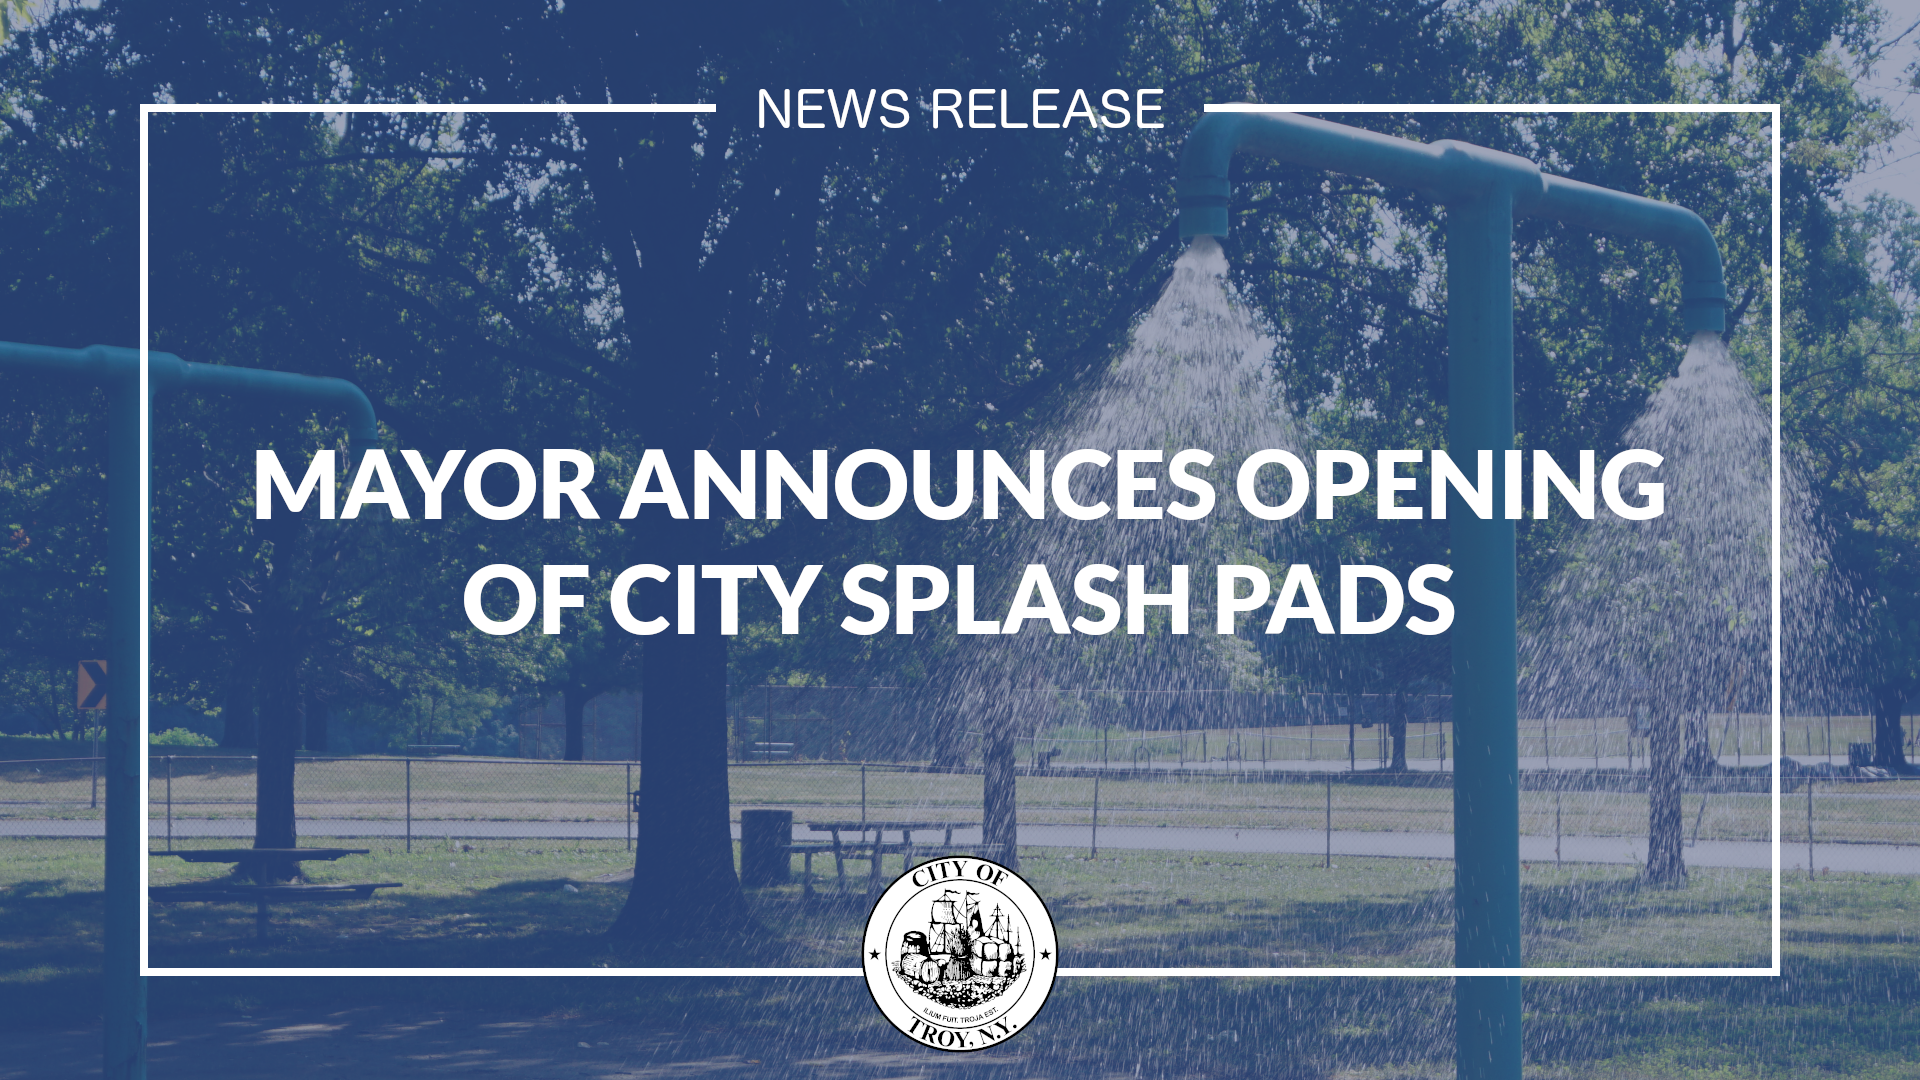 White text against dark blue background. Text reads Mayor Announces Opening of City Splash Pads. Image of a splash pad is visible in the background.